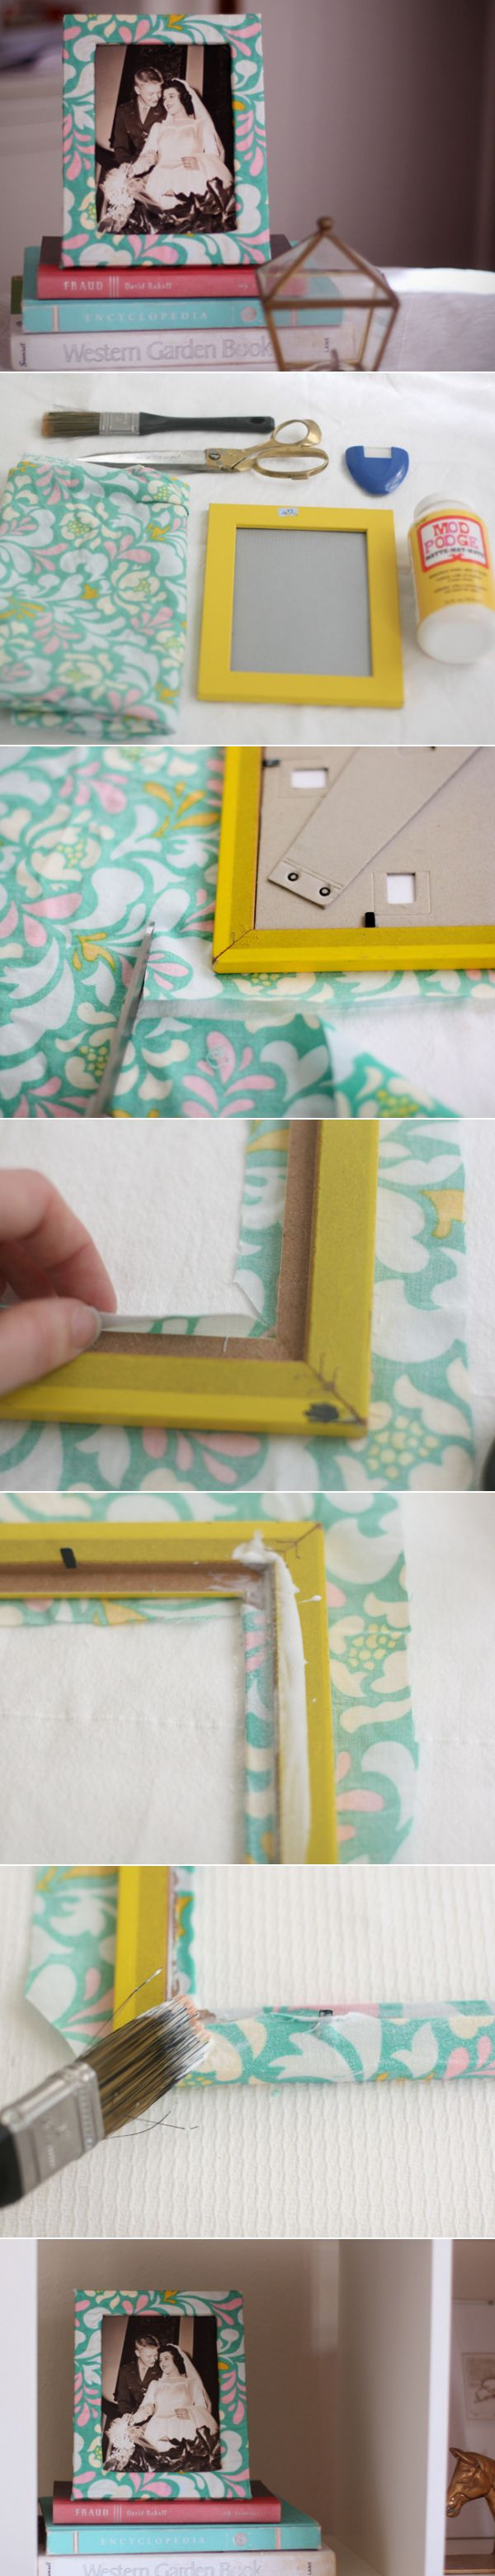 DIY: Fabric Covered Frame   From momtastic